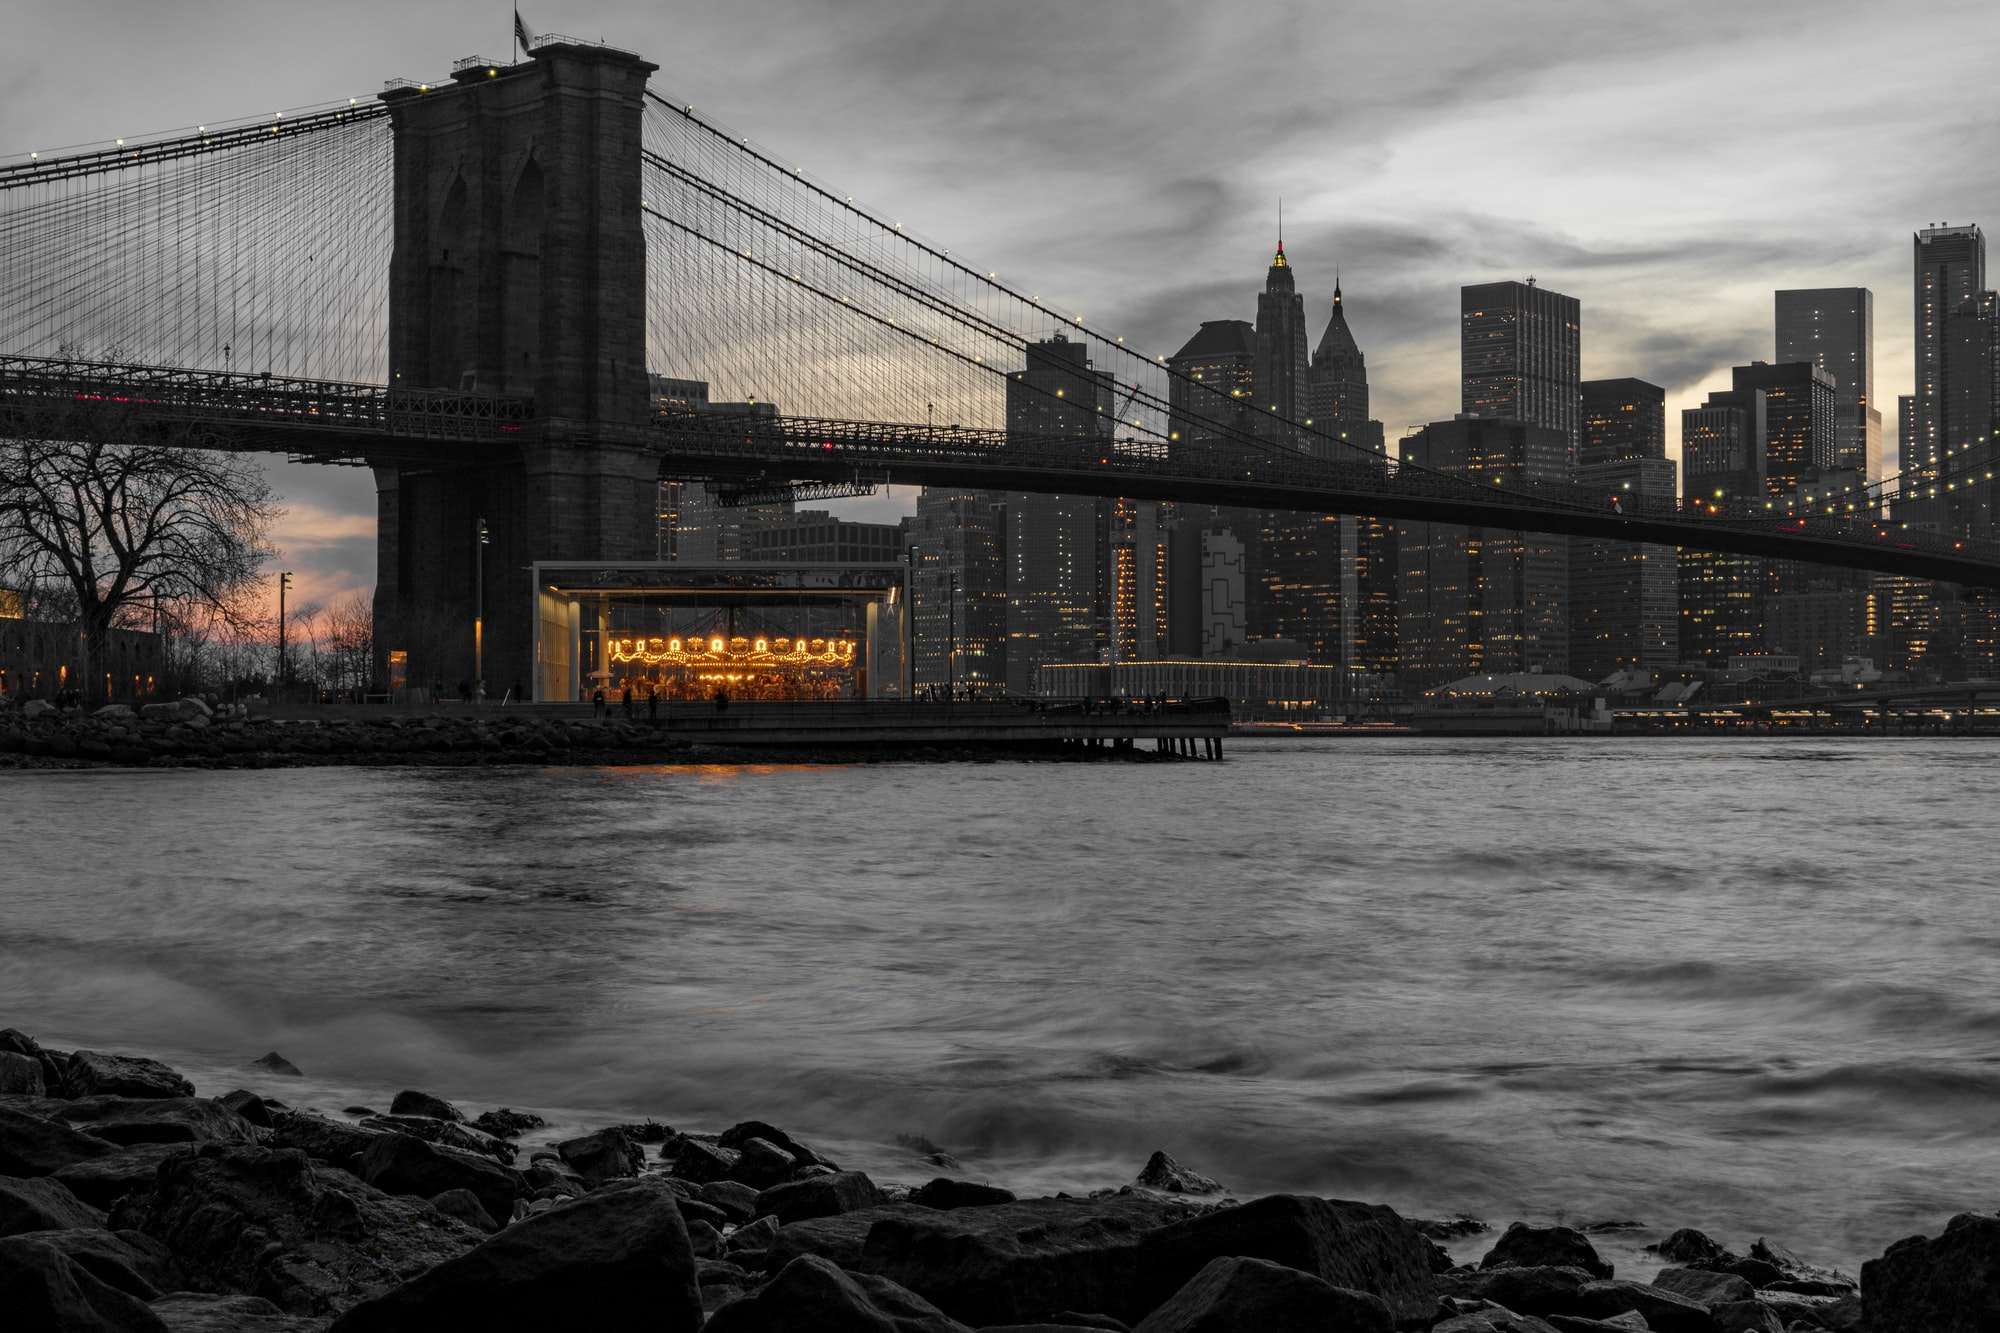 This is one of the best places to view the sunset in New York City.  Over on the Brooklyn side in Dumbo is this cove that offers views of the Brooklyn Bridge, Jane's Carousel and the Manhattan Skyline.